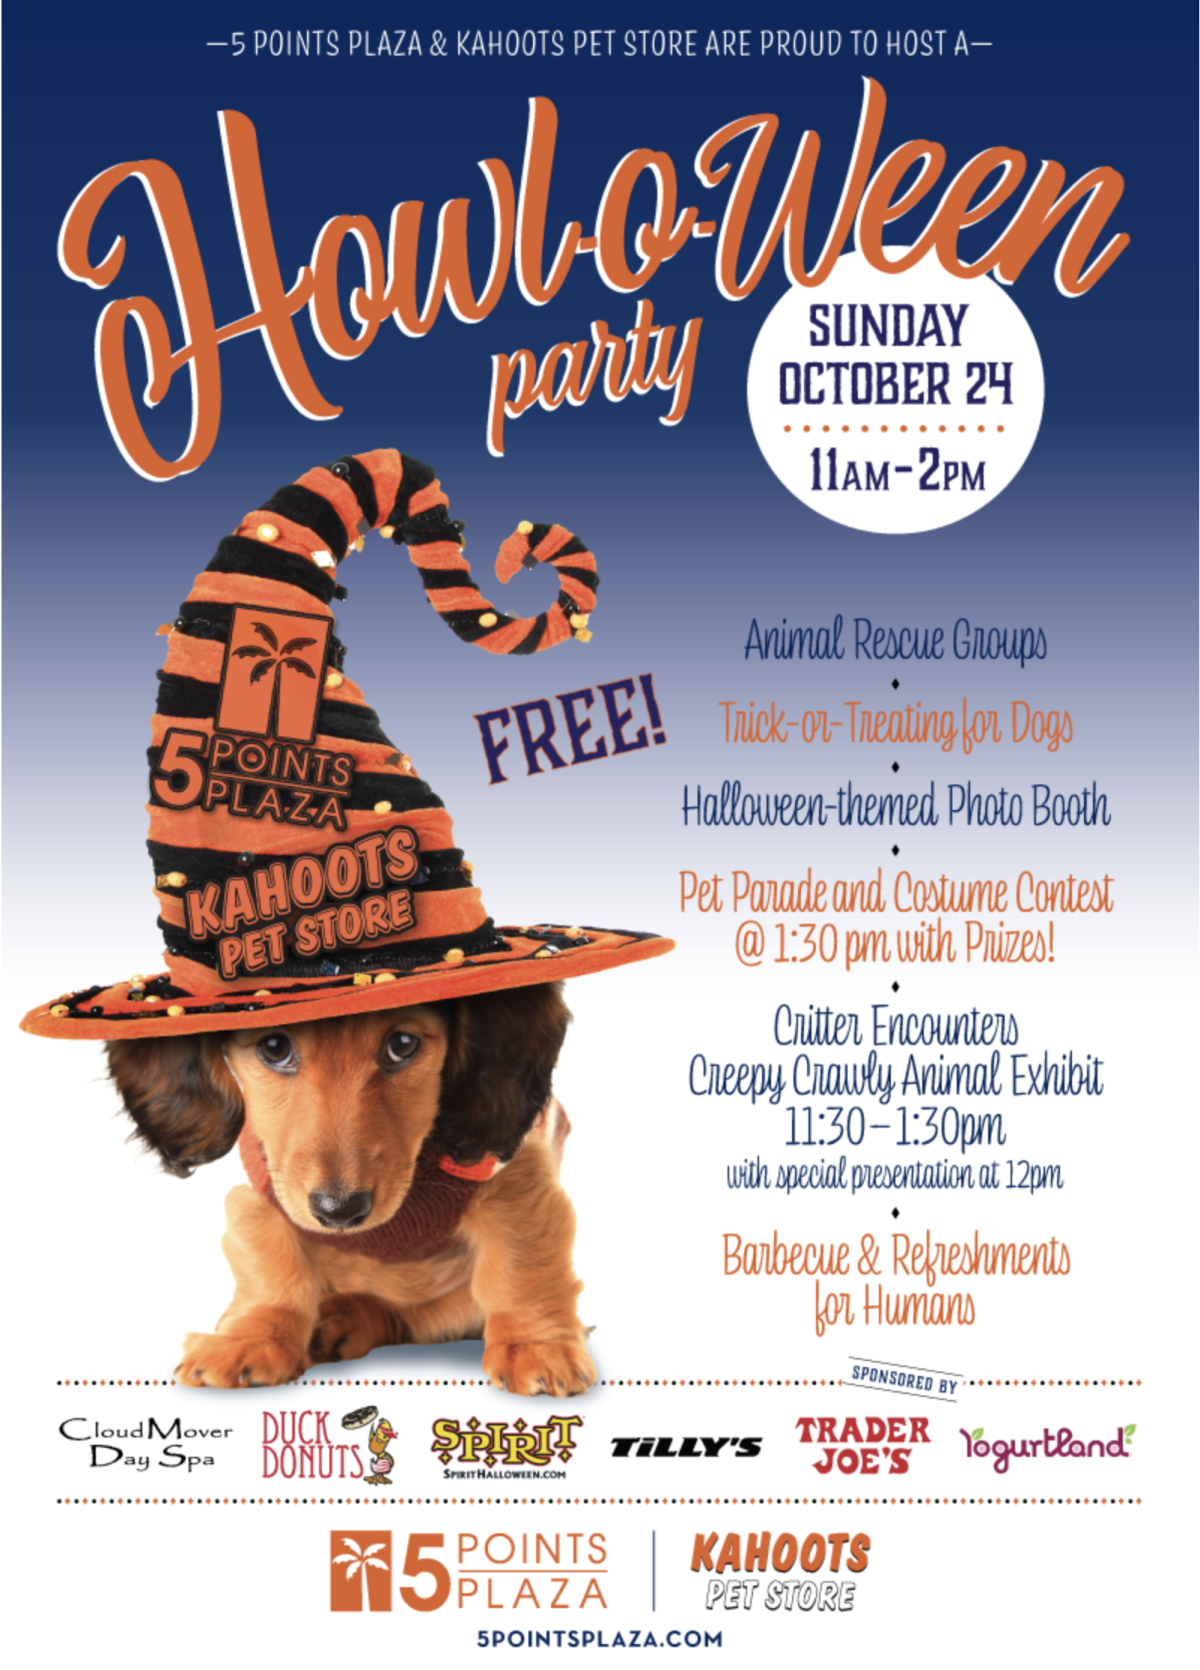 5 Points Plaza and Kahoots Pet Store in Huntington Beach, CA host a Howl-O-Ween party October 24